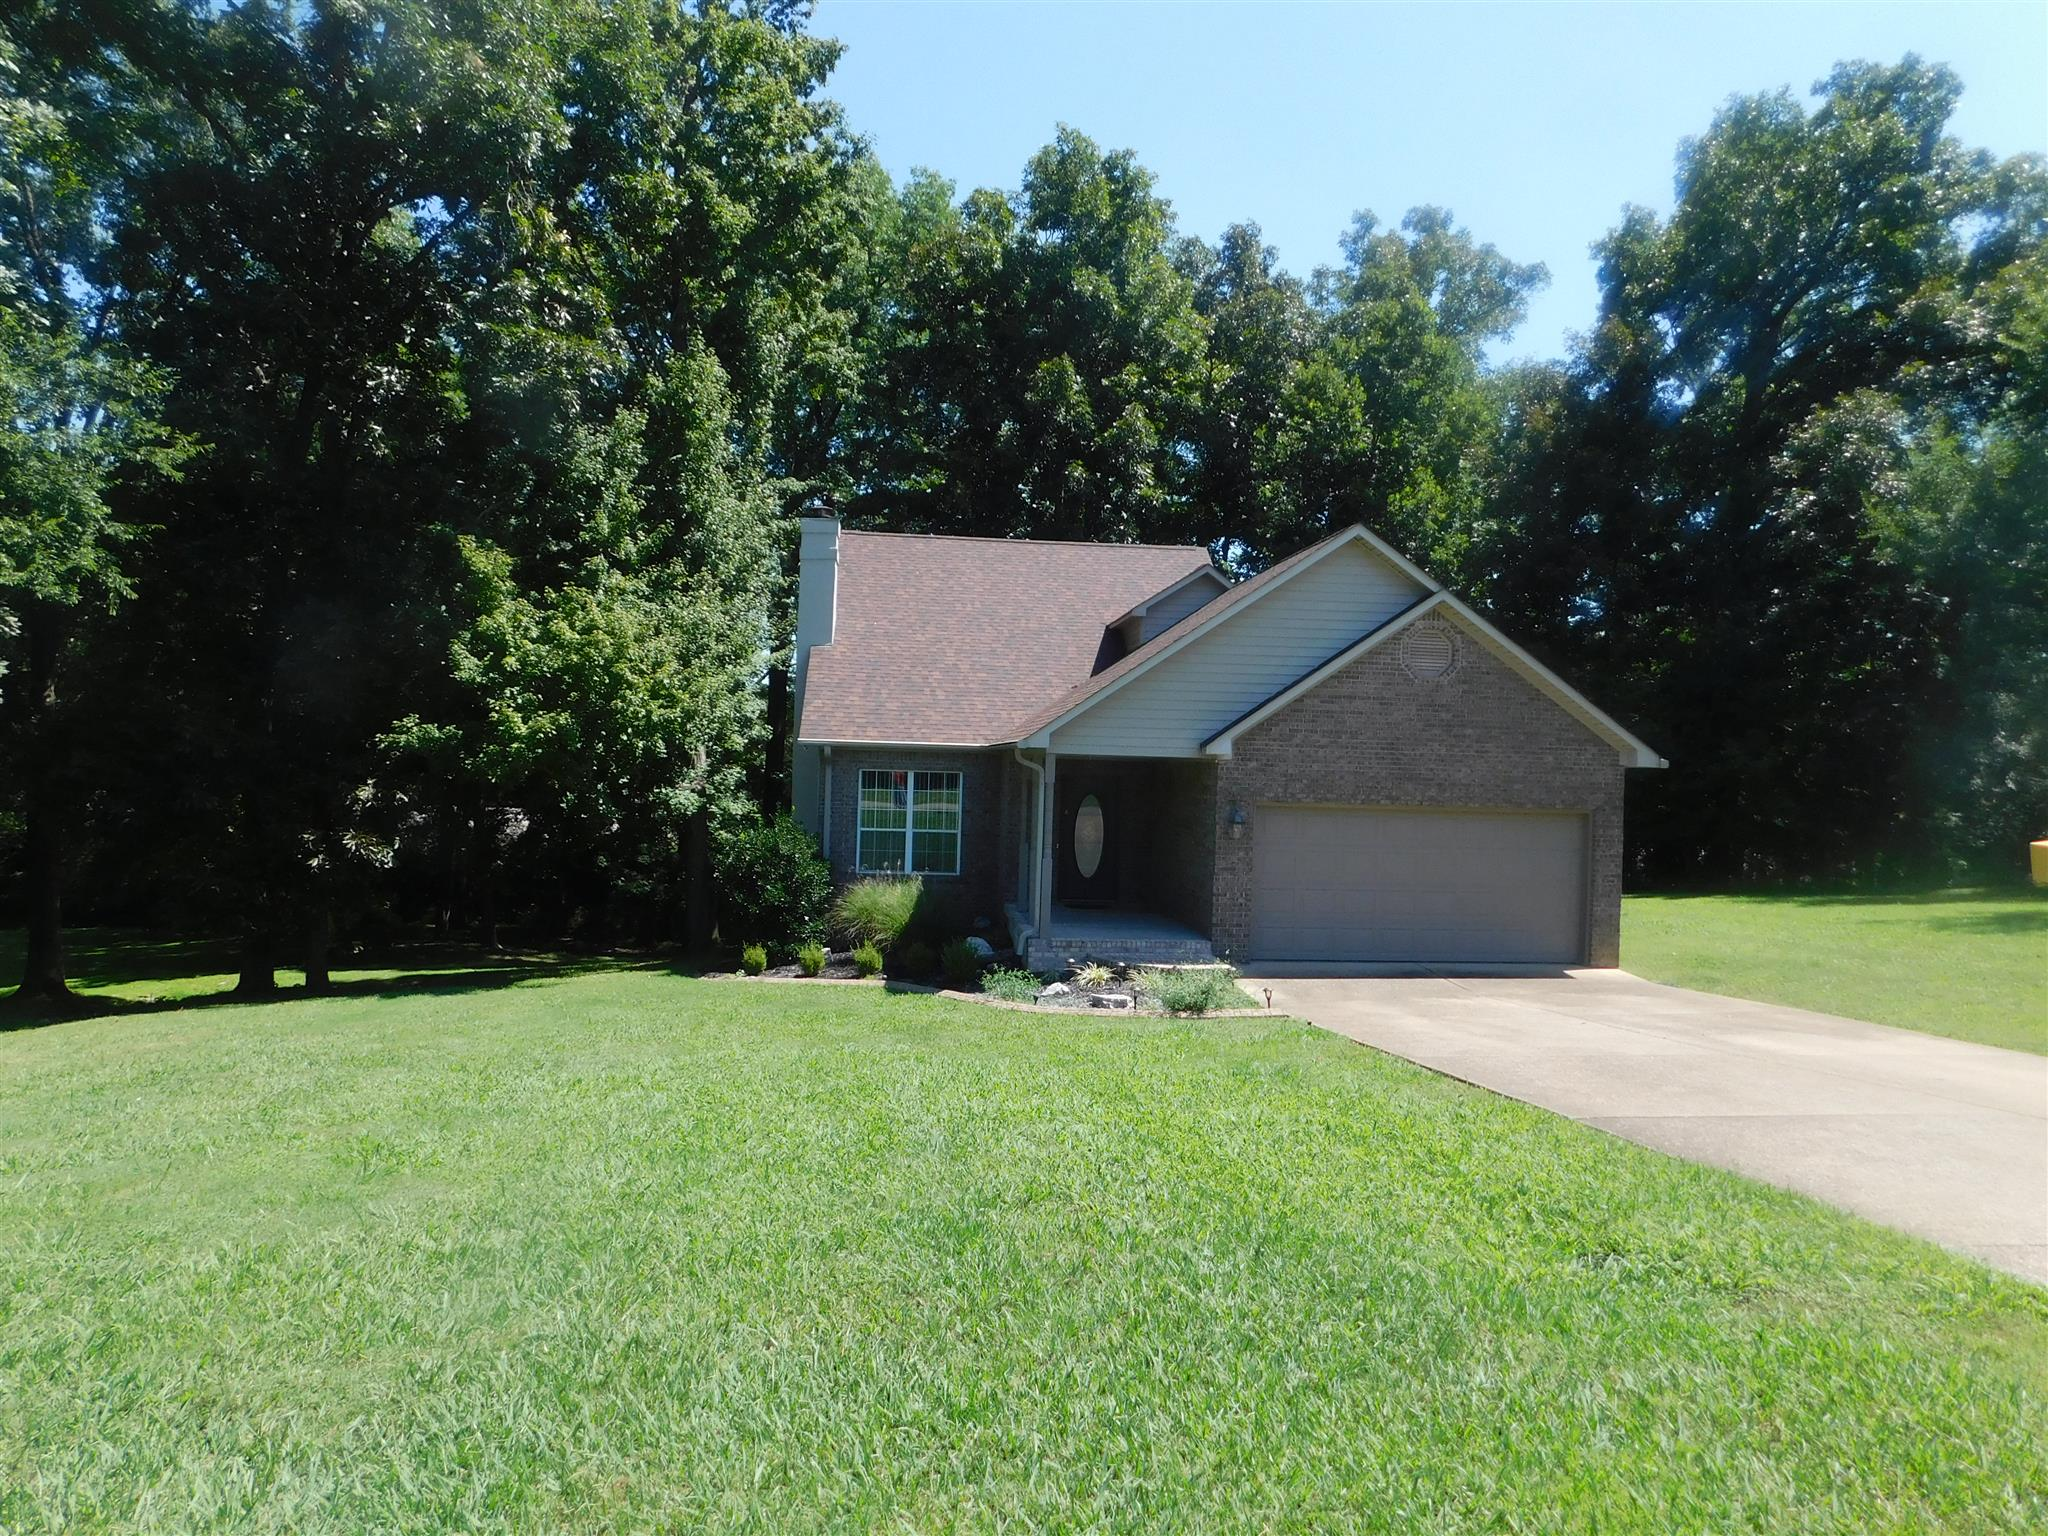 1200 White Dr, Lewisburg, TN 37091 - Lewisburg, TN real estate listing